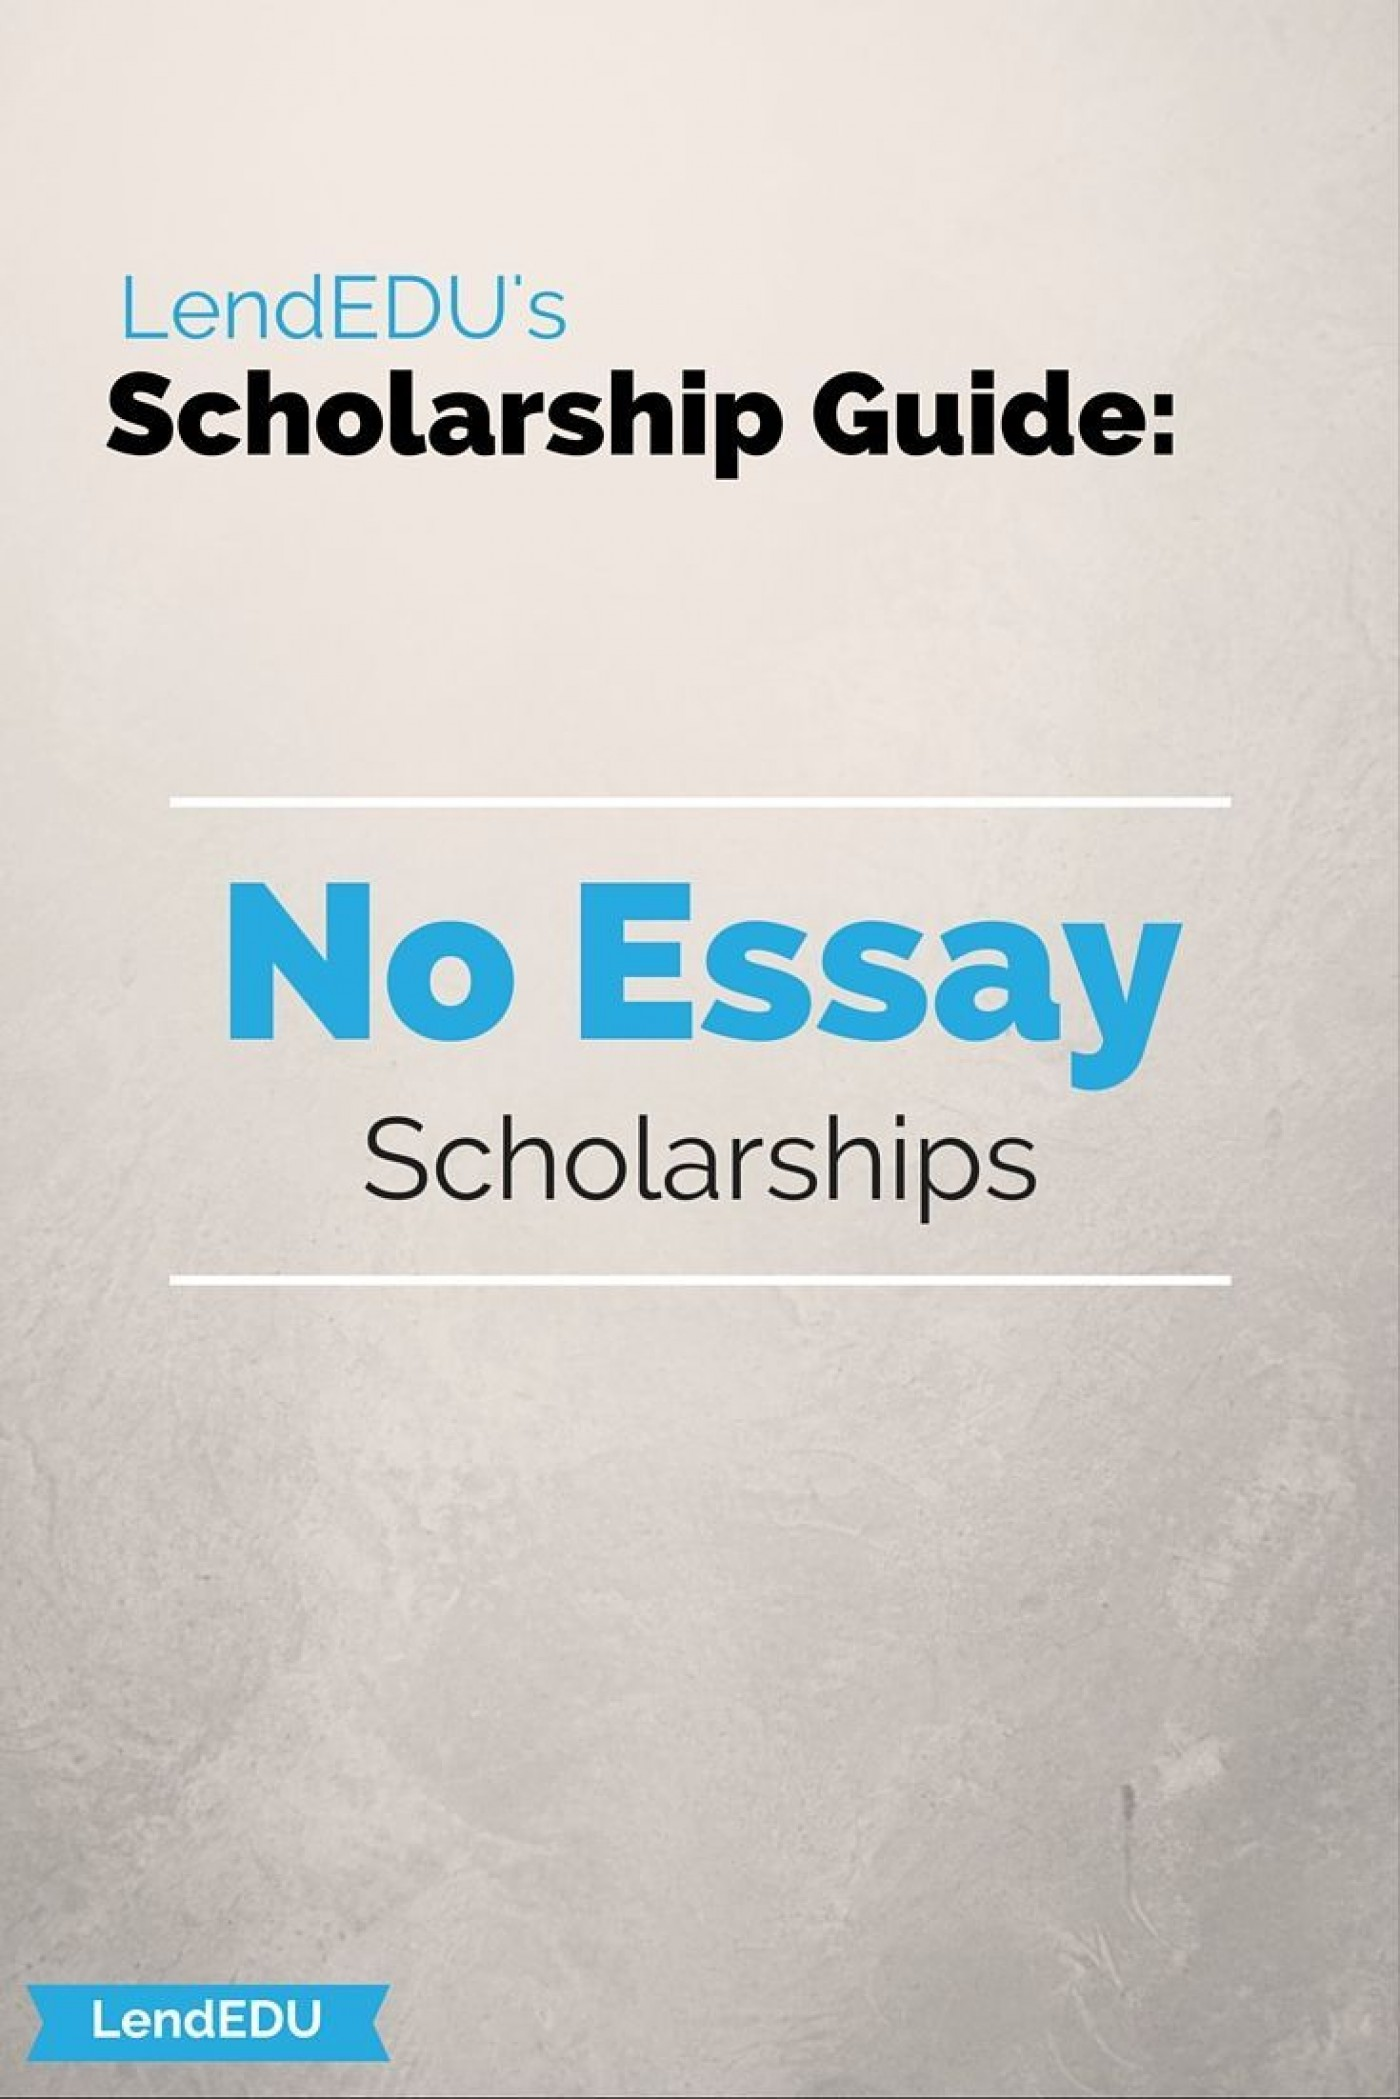 016 Essay Example No Scholarship Wondrous Scholarships 2019 Graduates For High School Seniors Applications 1400